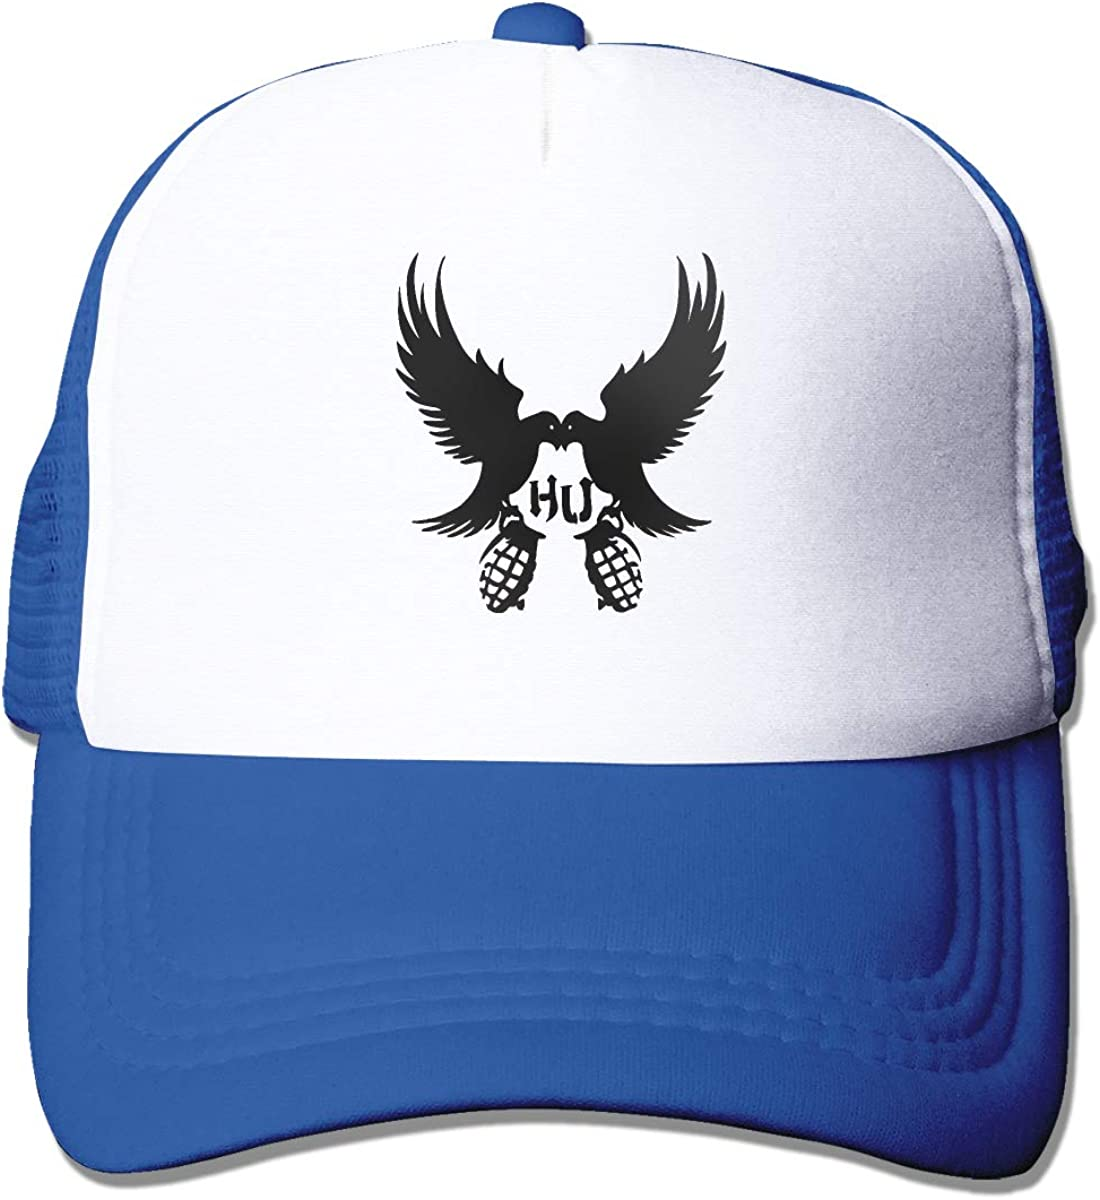 Hollywood Undead Dove and Grenade Trucker Hat Snap Back Sun Mesh Baseball Cap Hip Hop Flat Hats for Men and Women